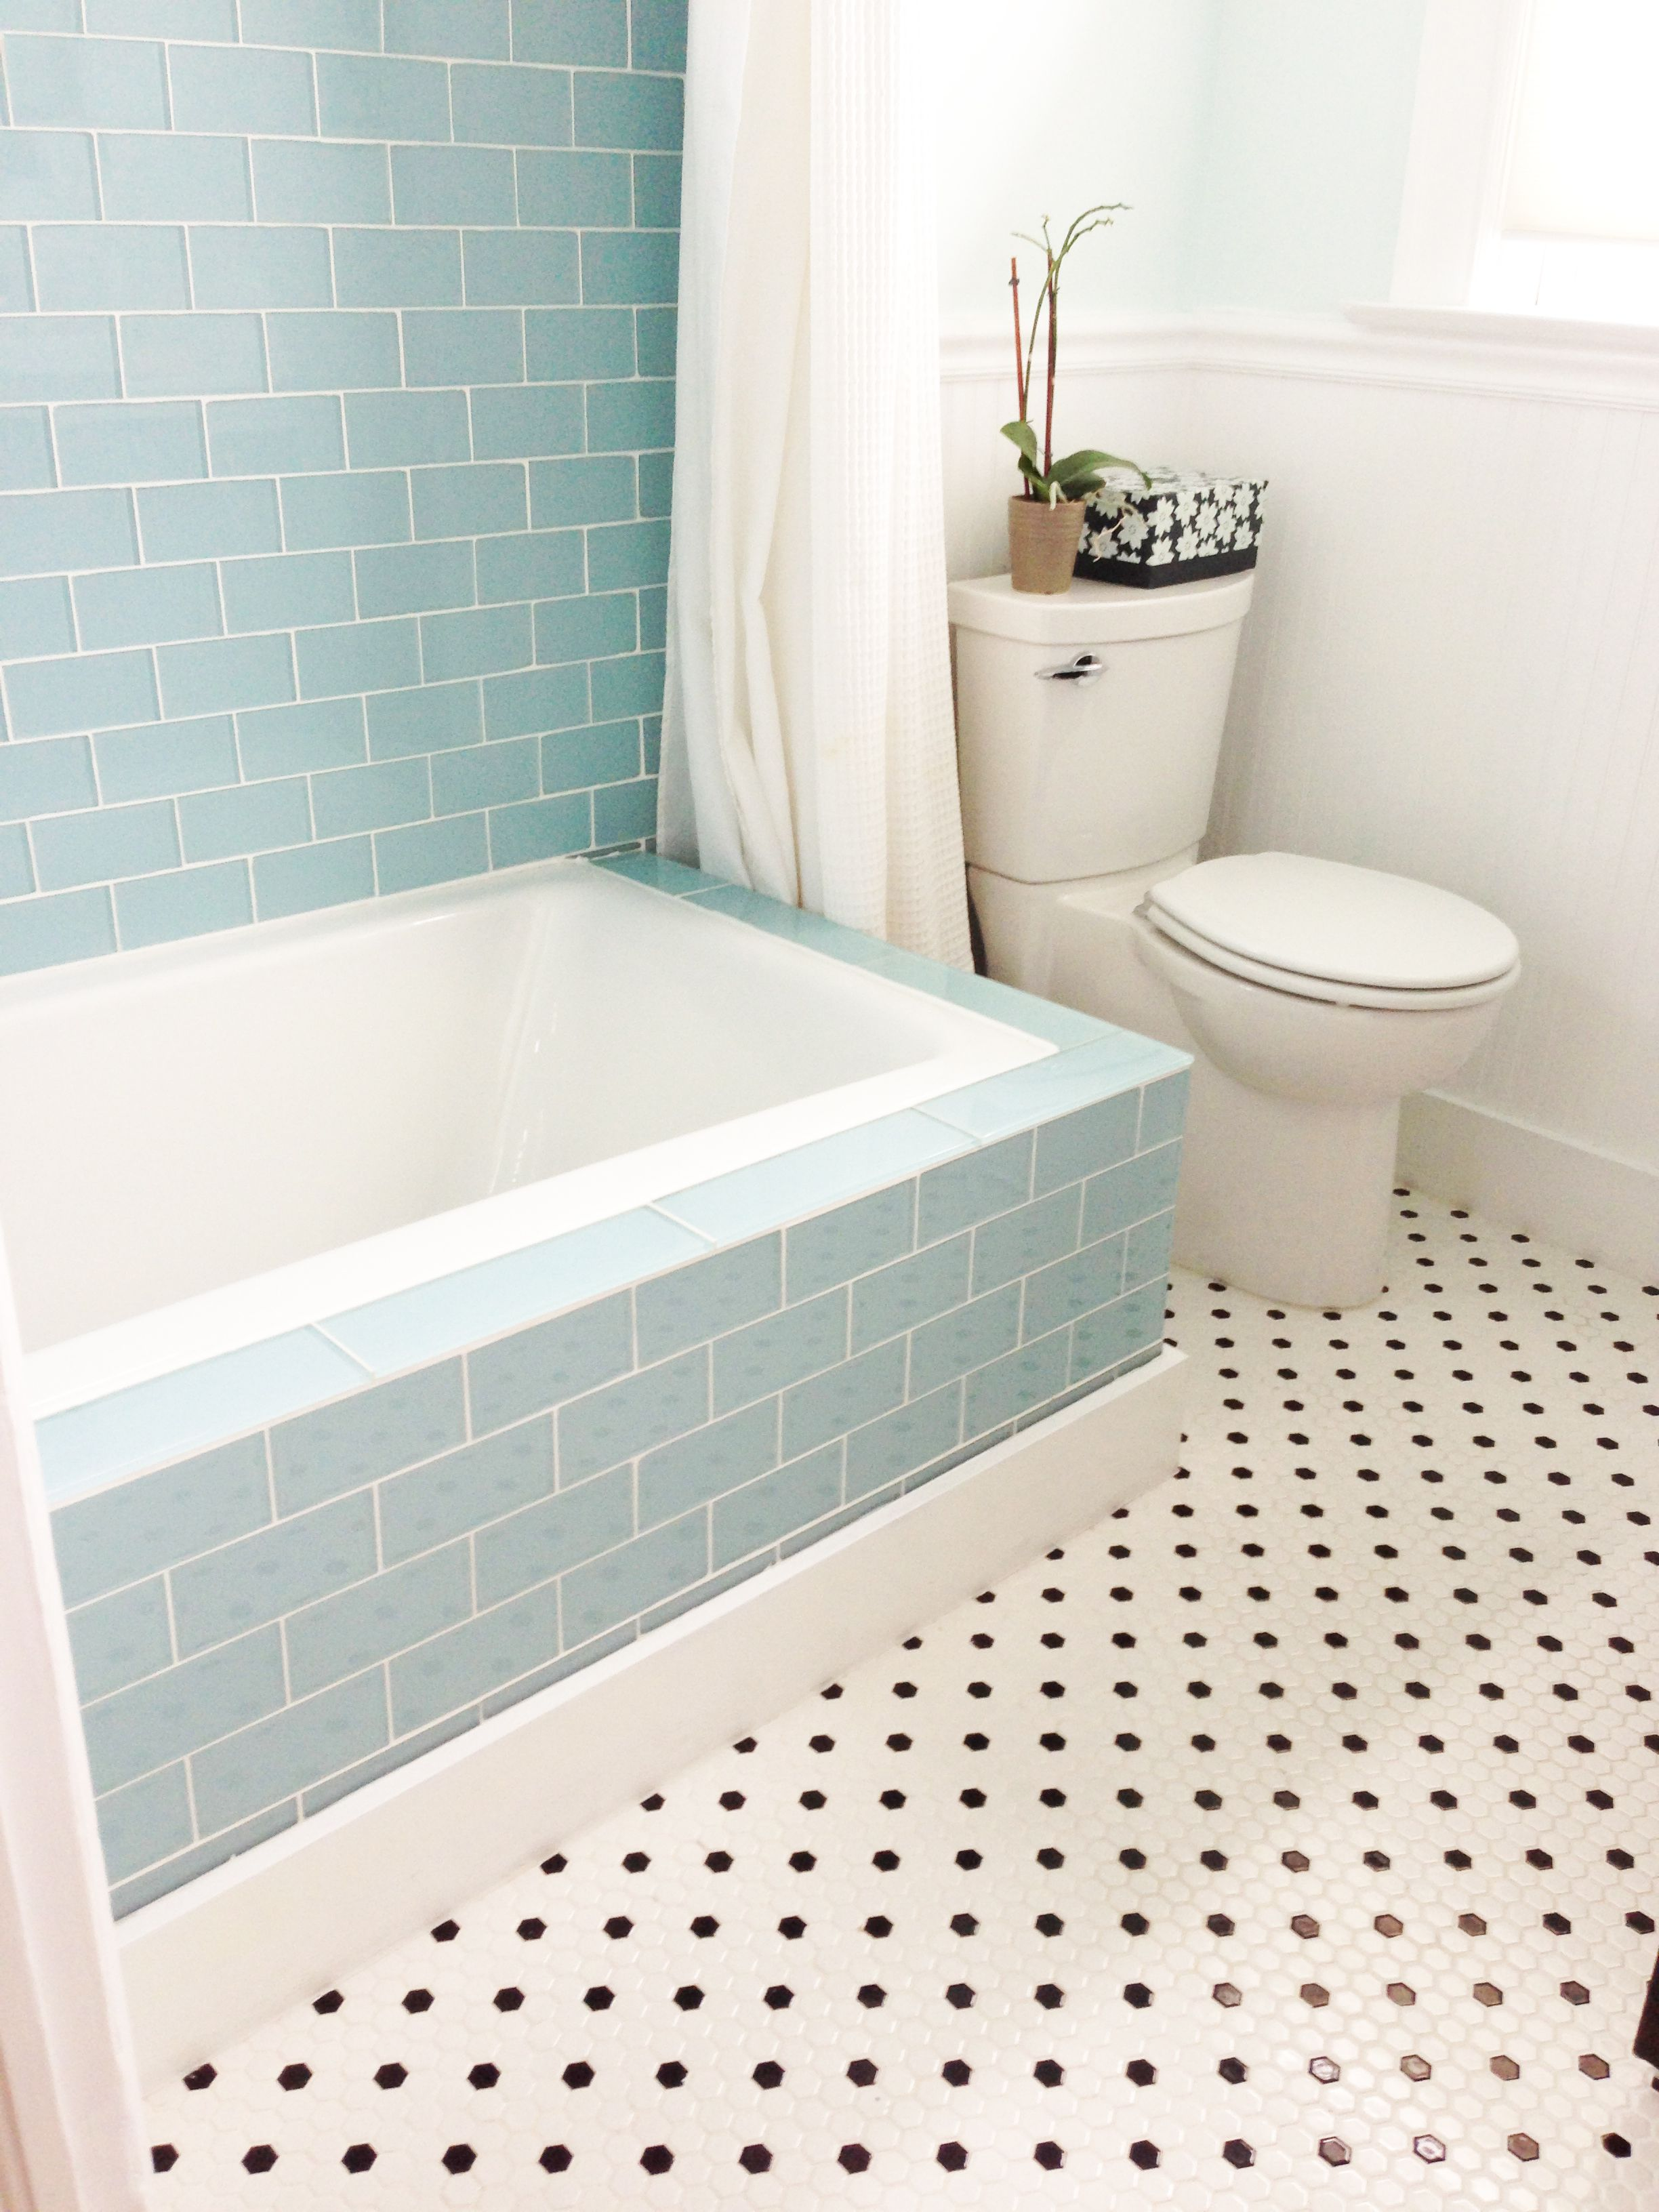 vapor glass subway tile | bathtub surround, subway tiles and bathtubs